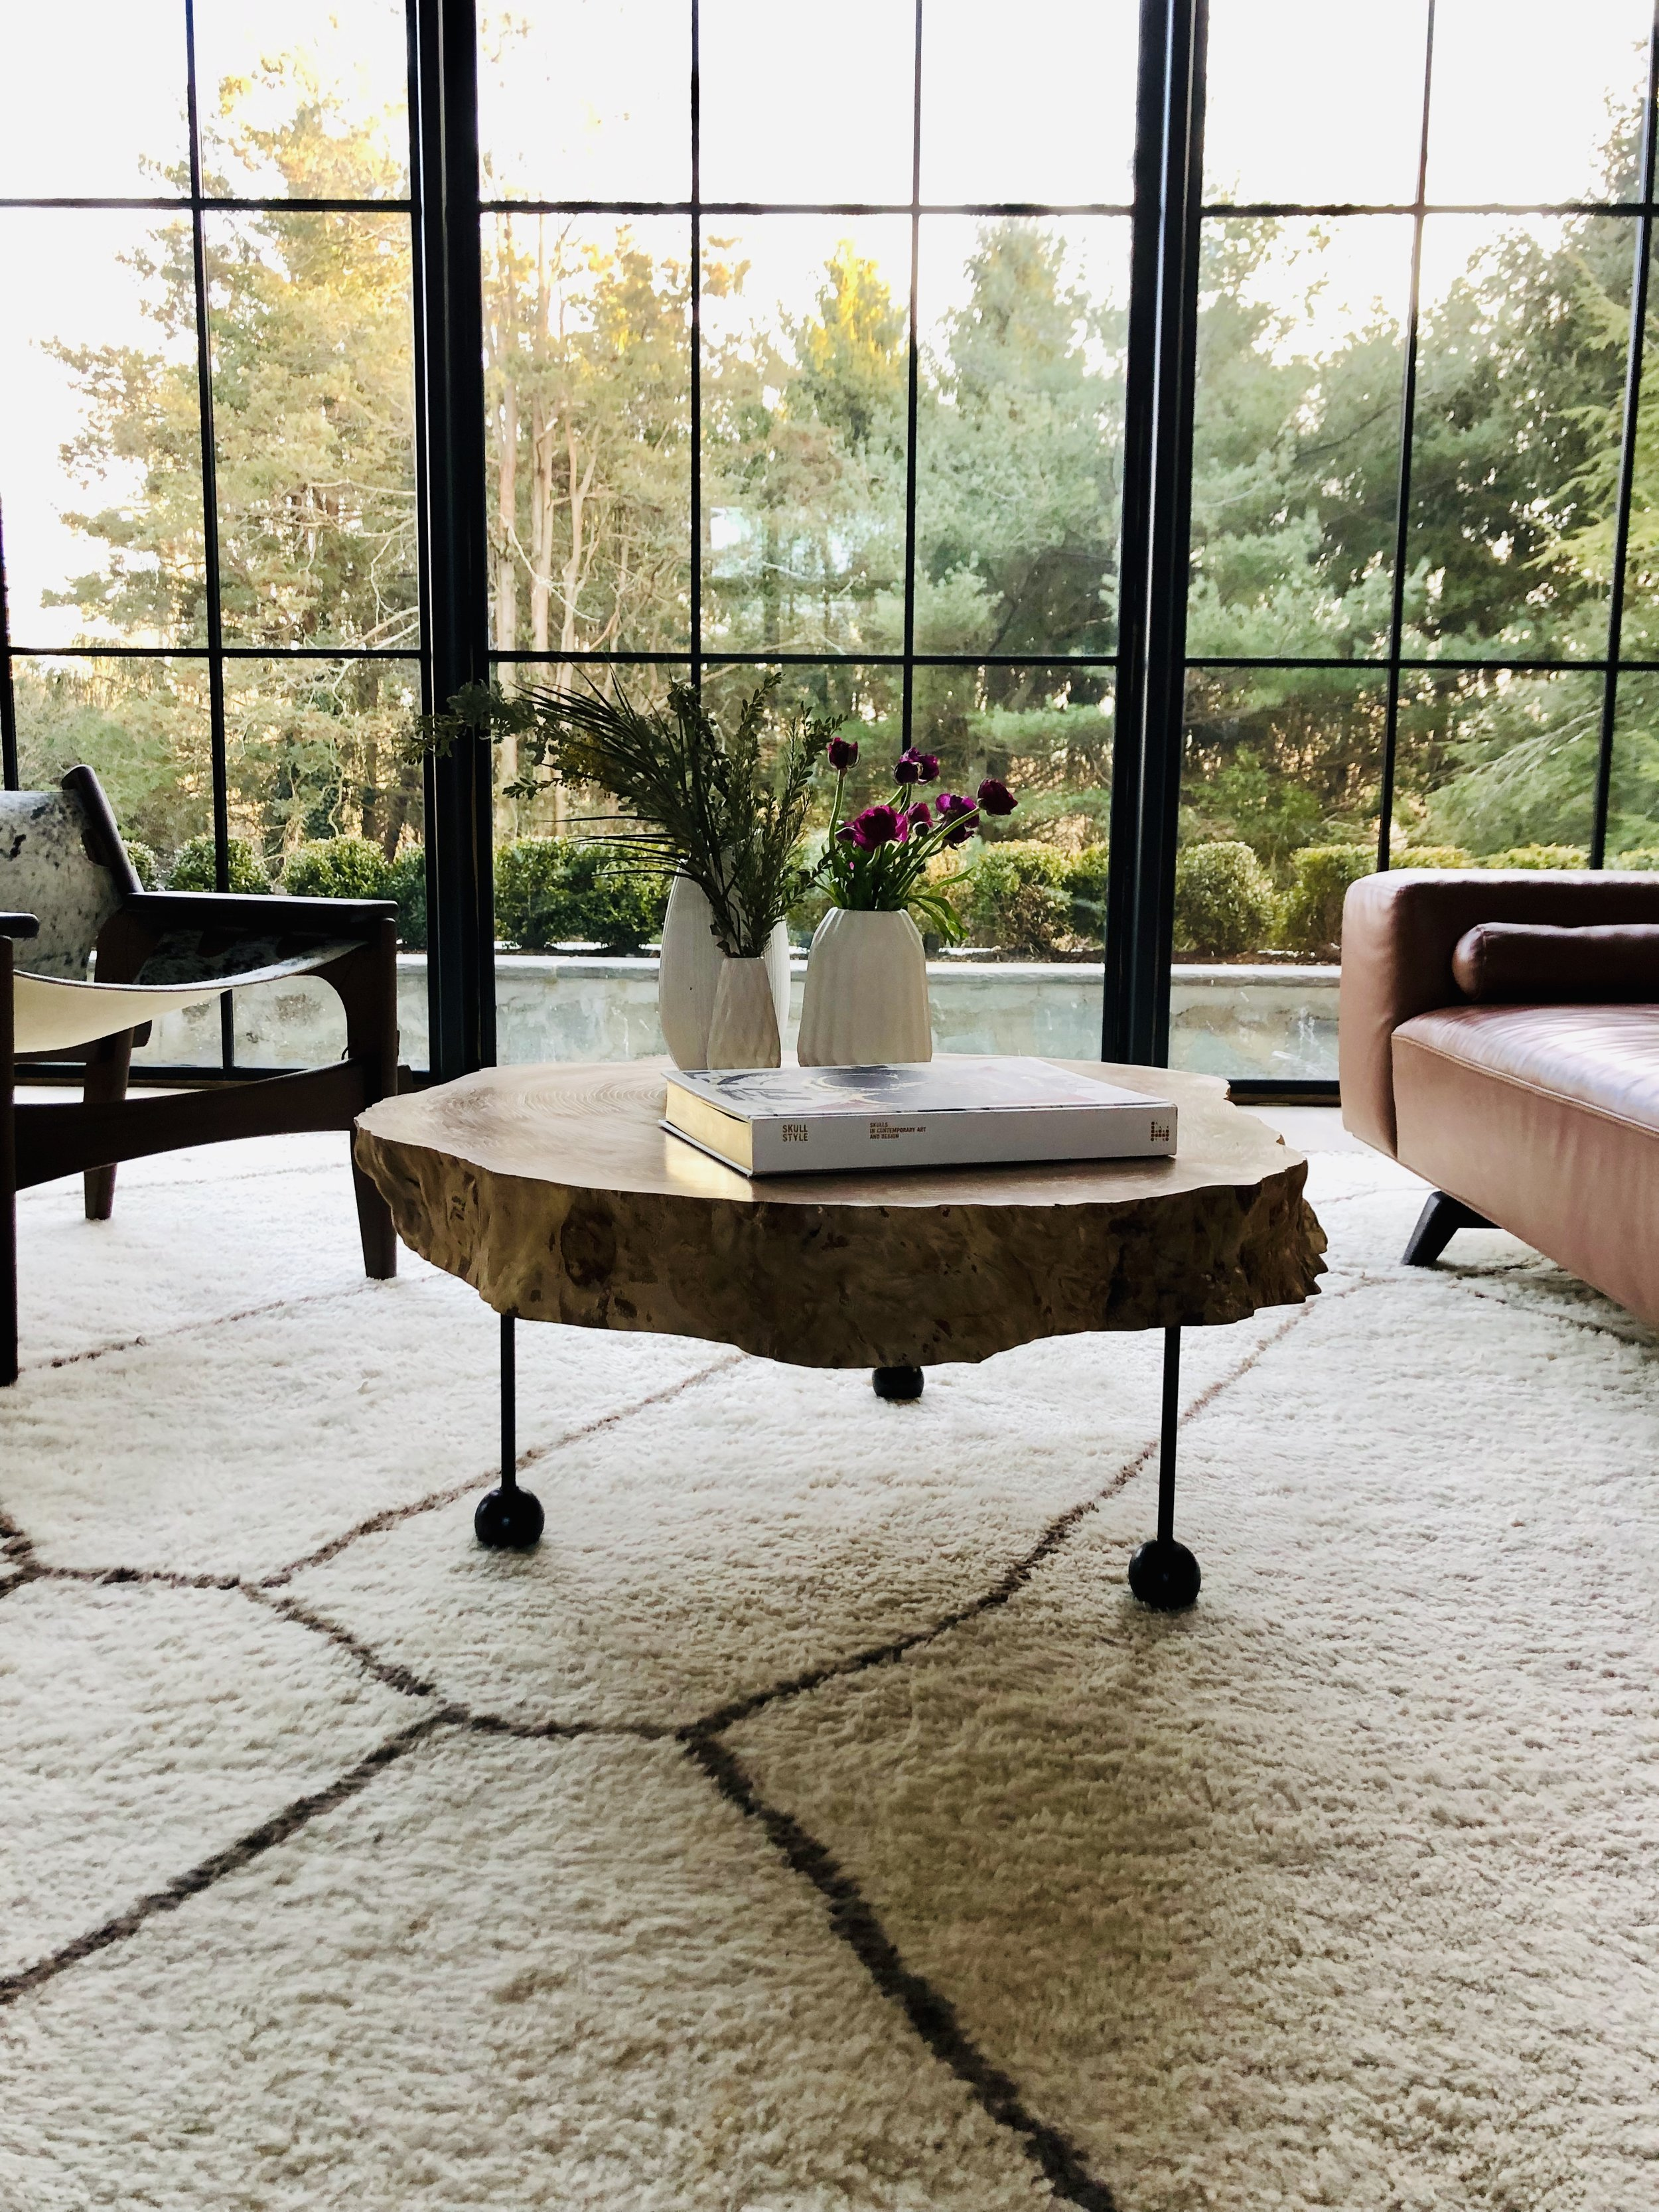 About Tate And Hunt Interiors